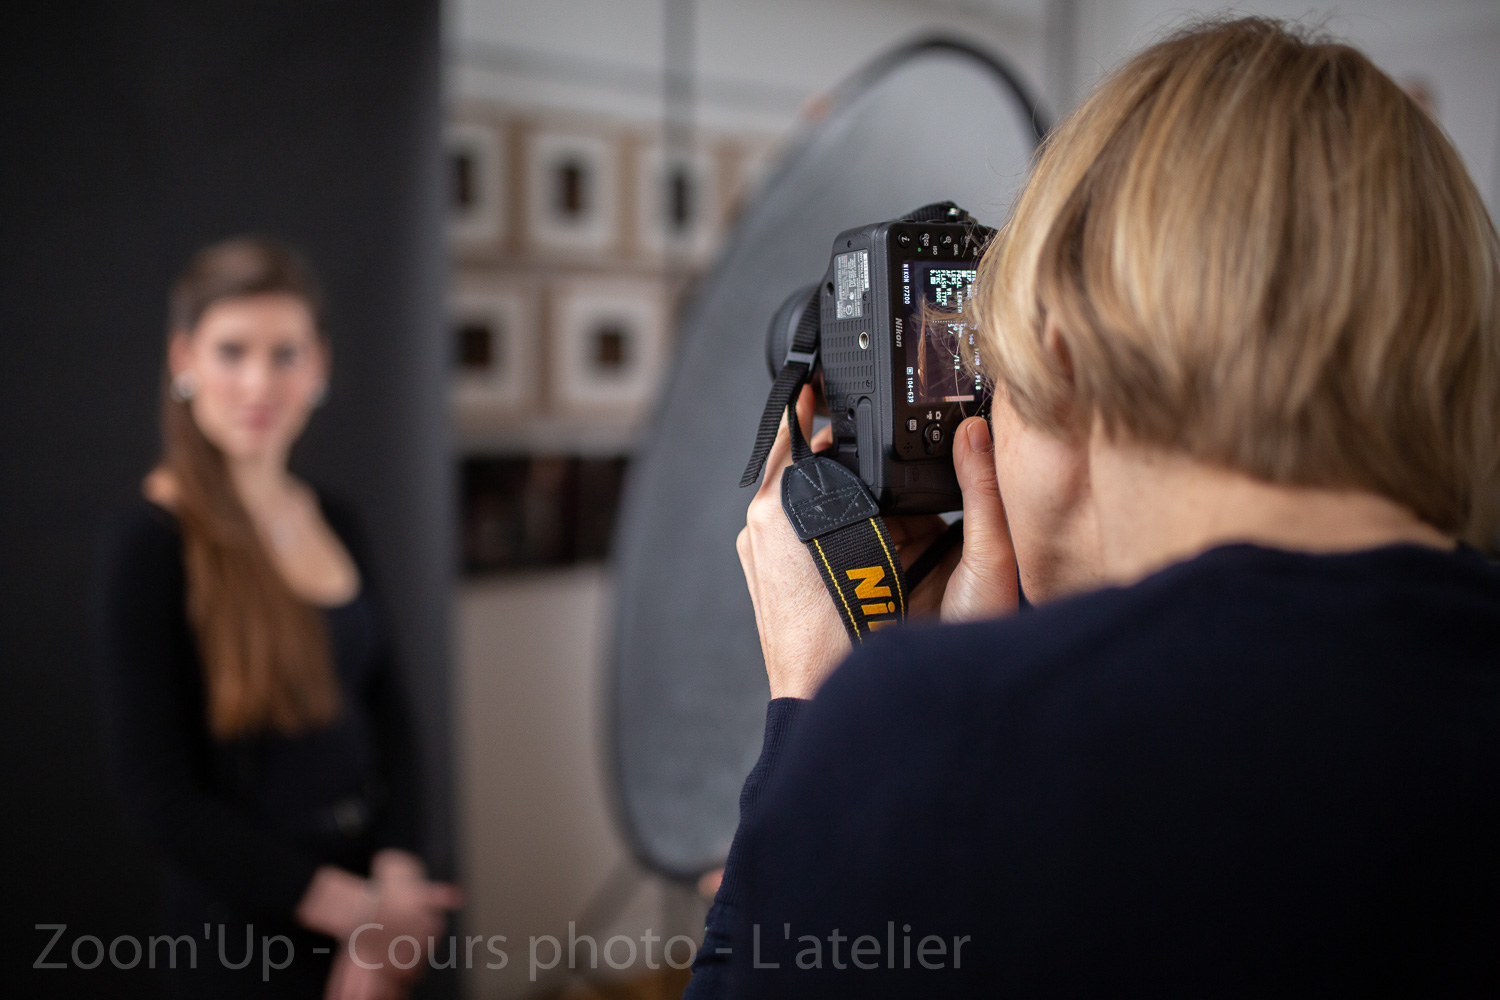 Les participants au travail. Zoom'Up - Cours photo - L'atelier